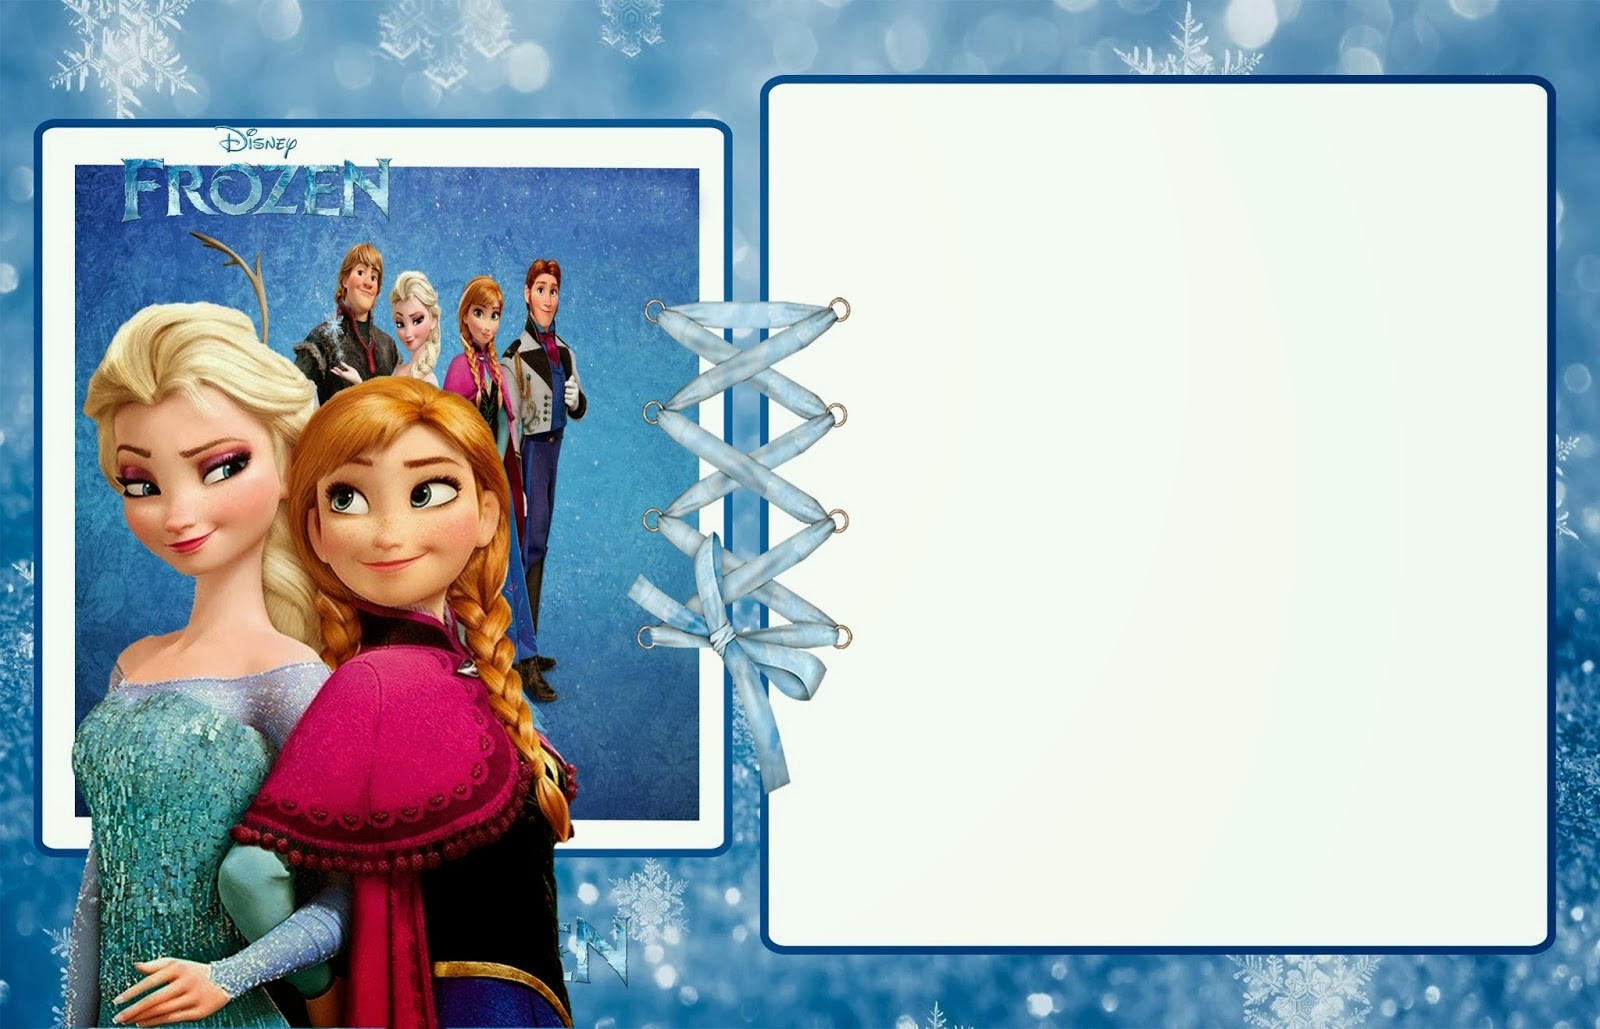 Free Frozen Invitations Printable Frozen Party Free Printable Invitations Oh My Fiesta In